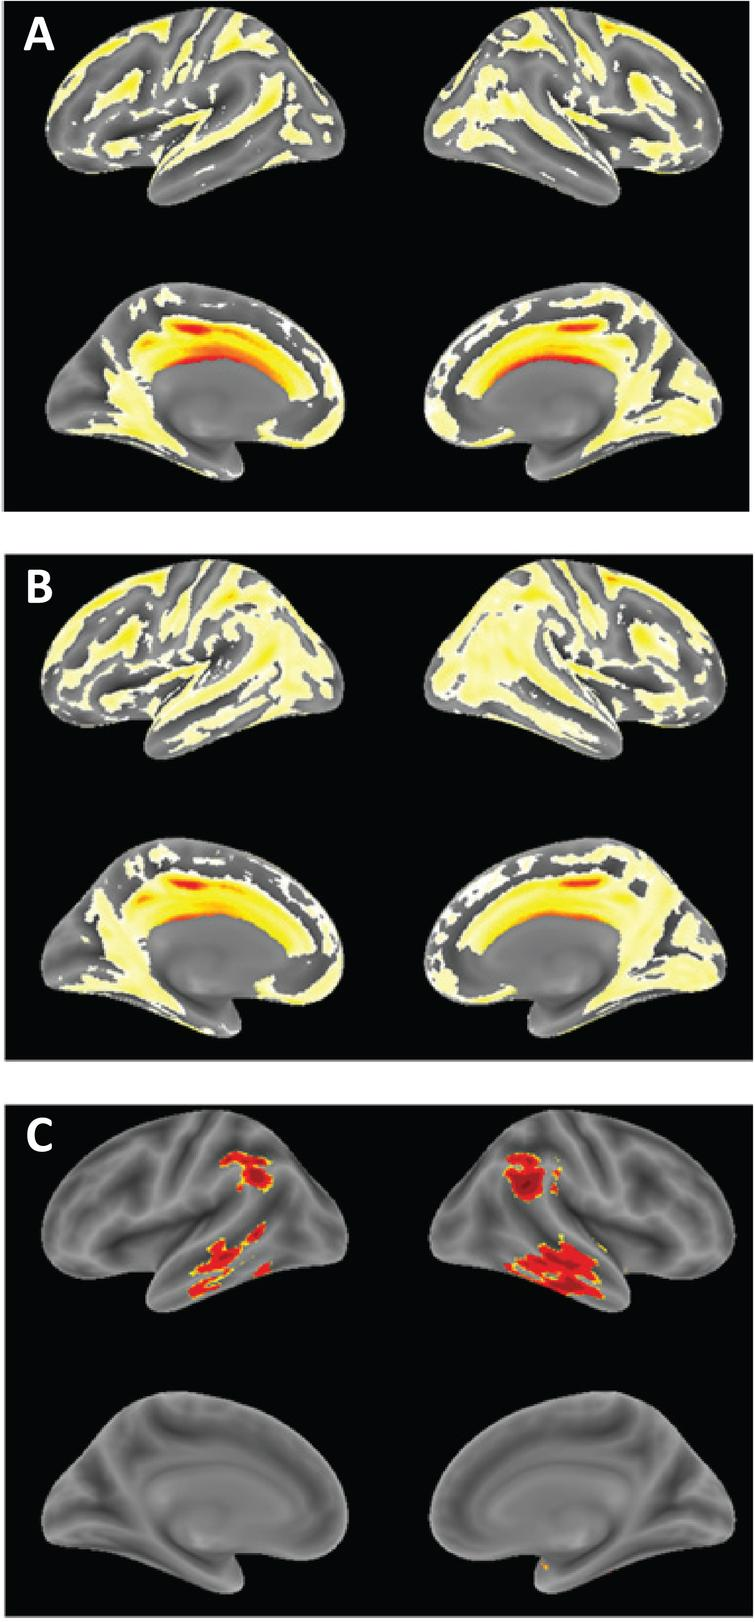 Voxel-based morphometric comparison showing regions of greater atrophy in patients receiving LMTM as monotherapy [N = 157] (A) or as add-on to approved treatments for AD [N = 610], (B) in TRx-237-005 compared with elderly controls [N = 244] from the ongoing Aberdeen birth cohort studies [23, 26], controlled for age, sex and total intracranial volume of each individual. (C) Voxel-based morphometric comparison of monotherapy and add-on patients in TRx-237-005. Data are displayed at a significance threshold corrected for family-wise error at the whole brain level at p < 0.05.